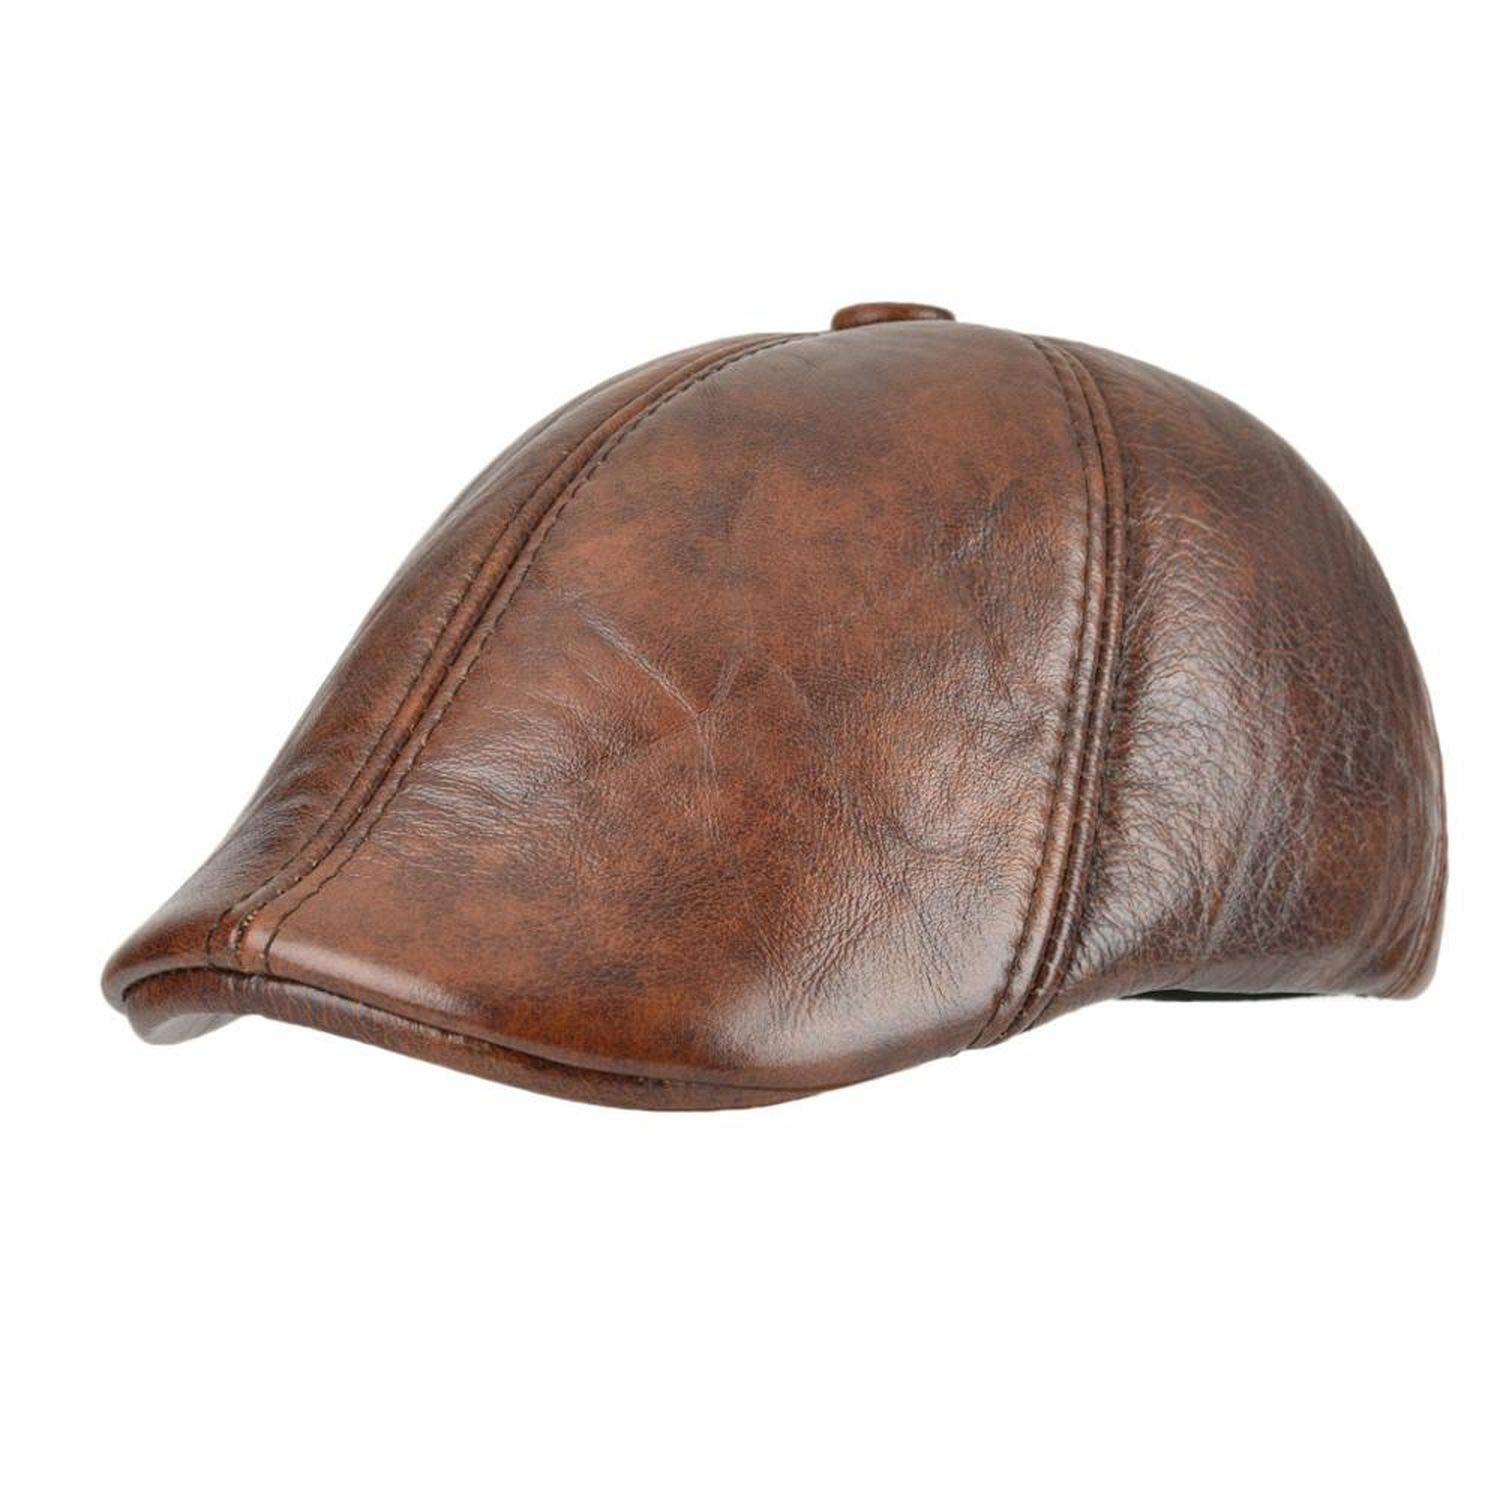 Genuine Leather Duckbill Flat Cap Six Panel Cabbie Gatsby Ivy Hat Winter Ear Protection Boina,Brown,57-58 cm